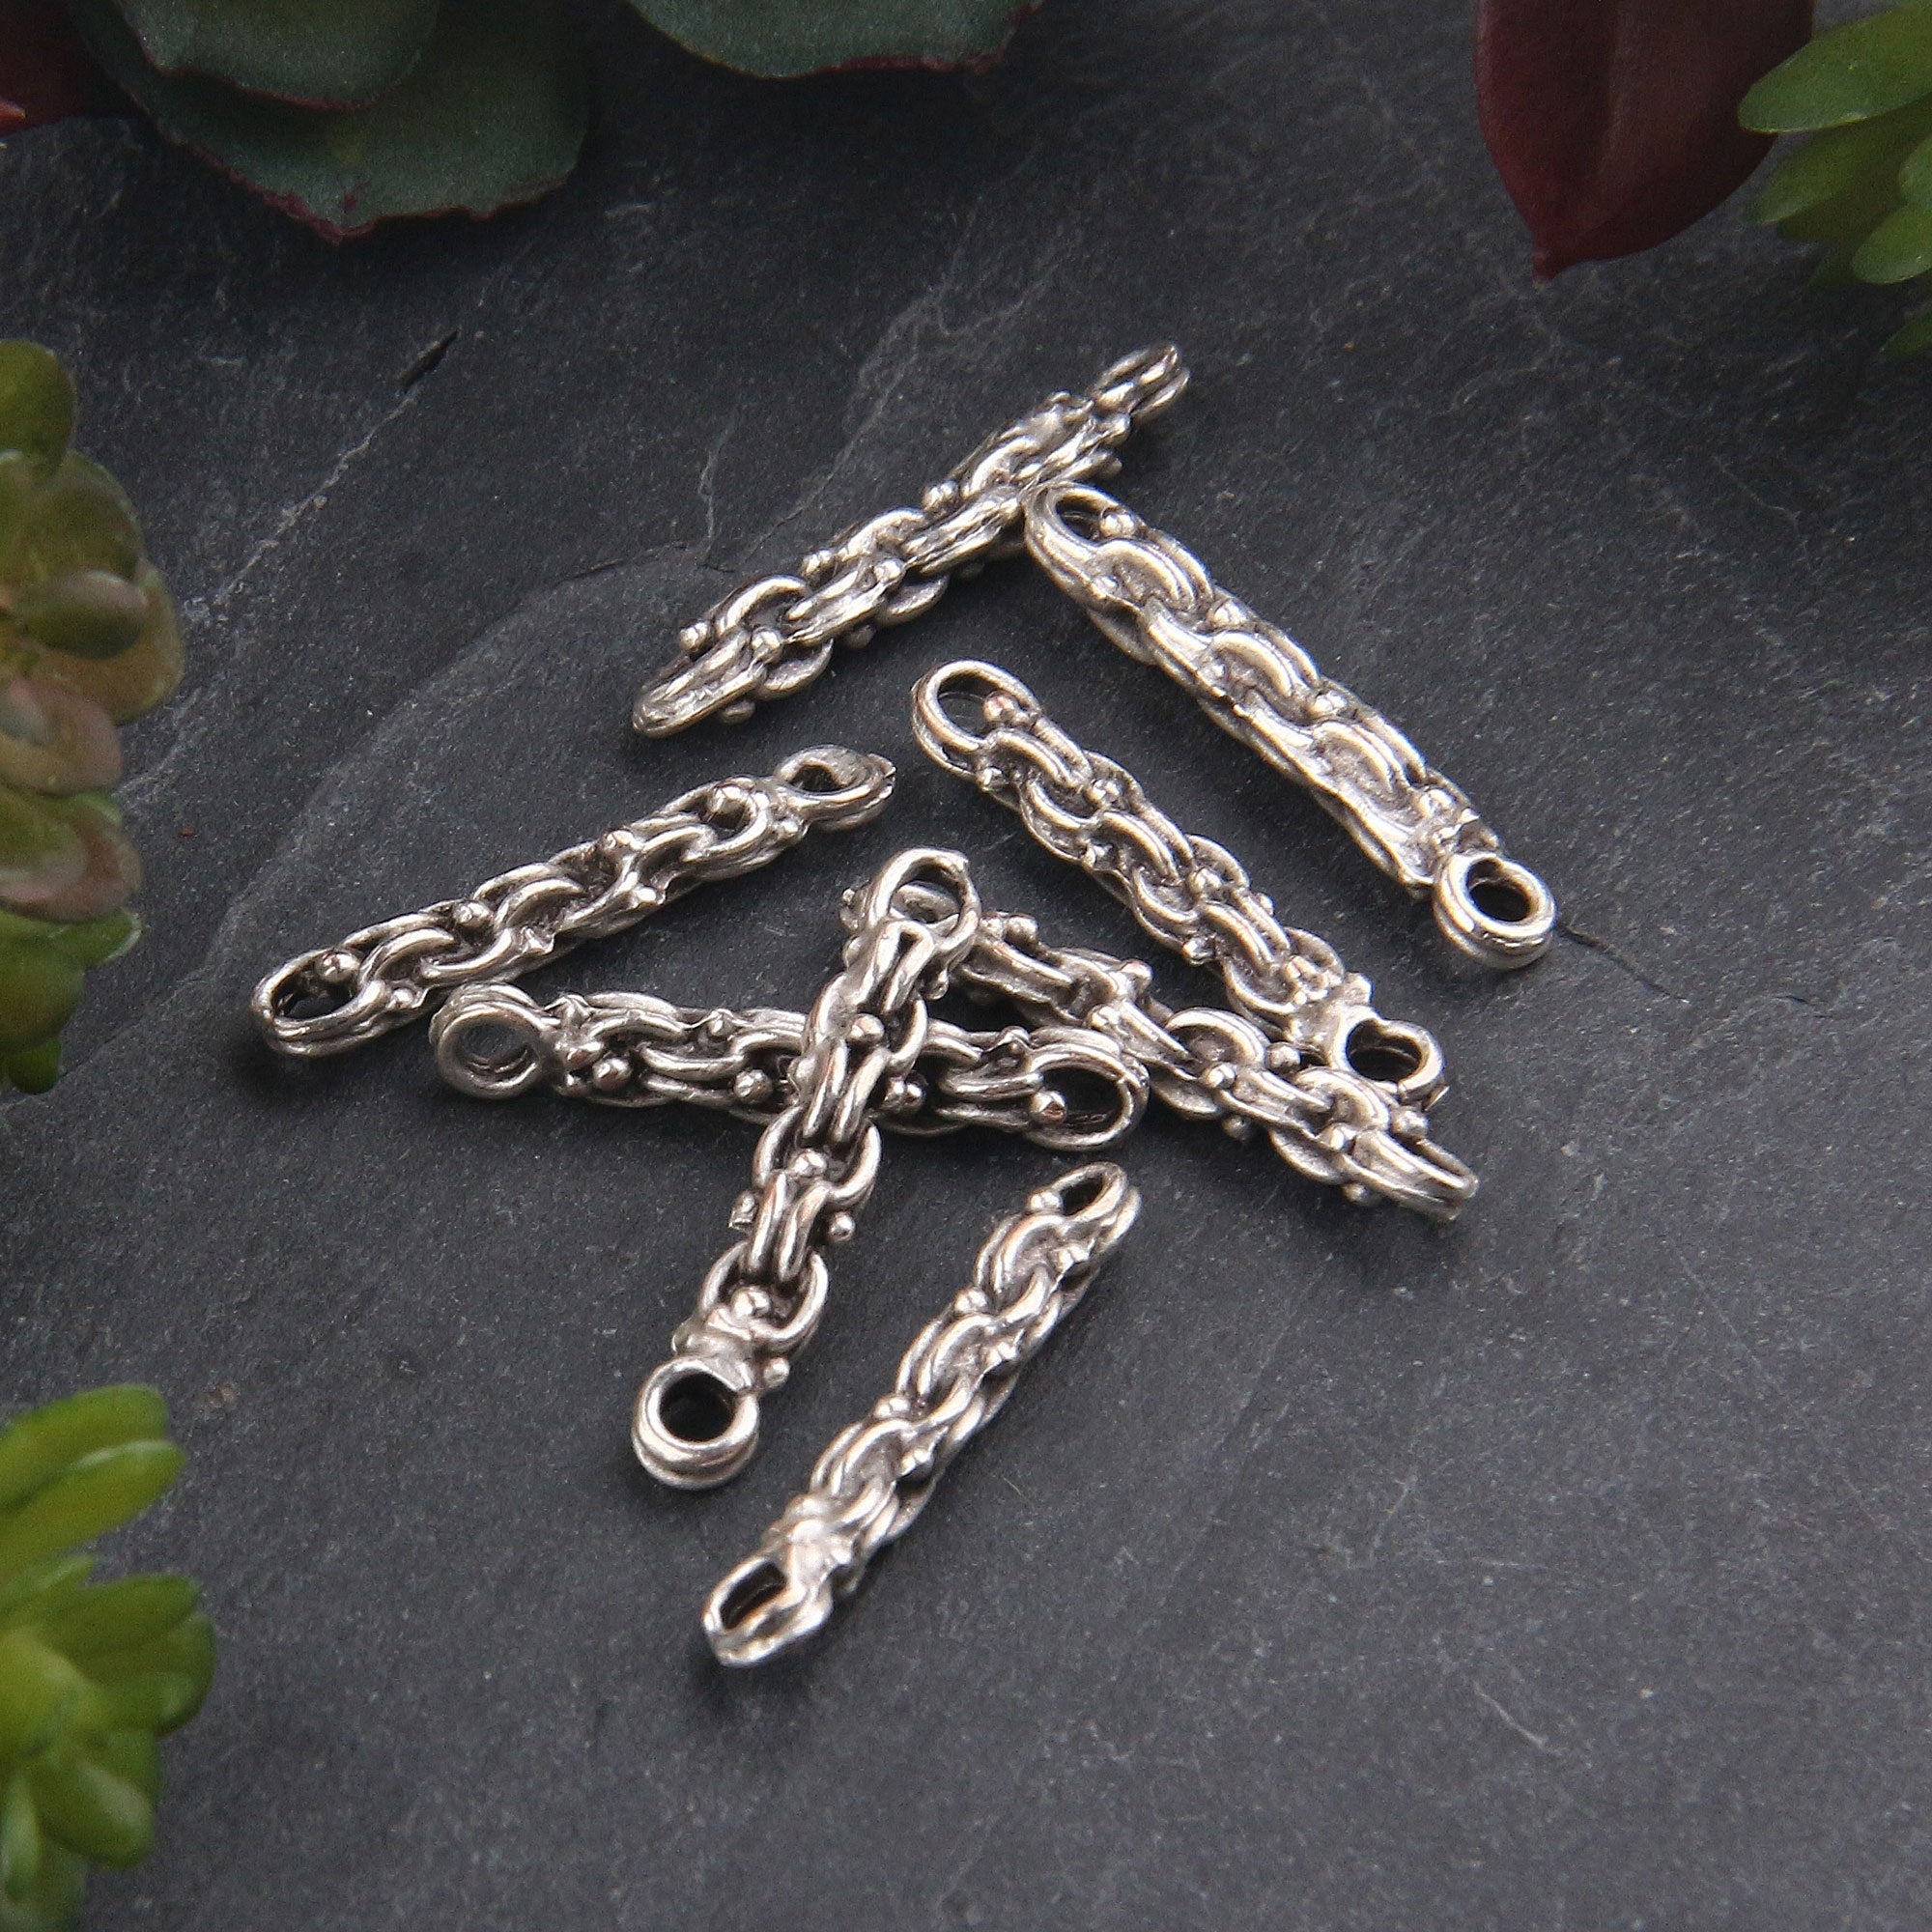 8 x Silver vPlated Stiff/Hard/Soldered Chain Connector | Chain Link | Silver Chain Link | 4x24mm | Jewelry Supplies // SC-249